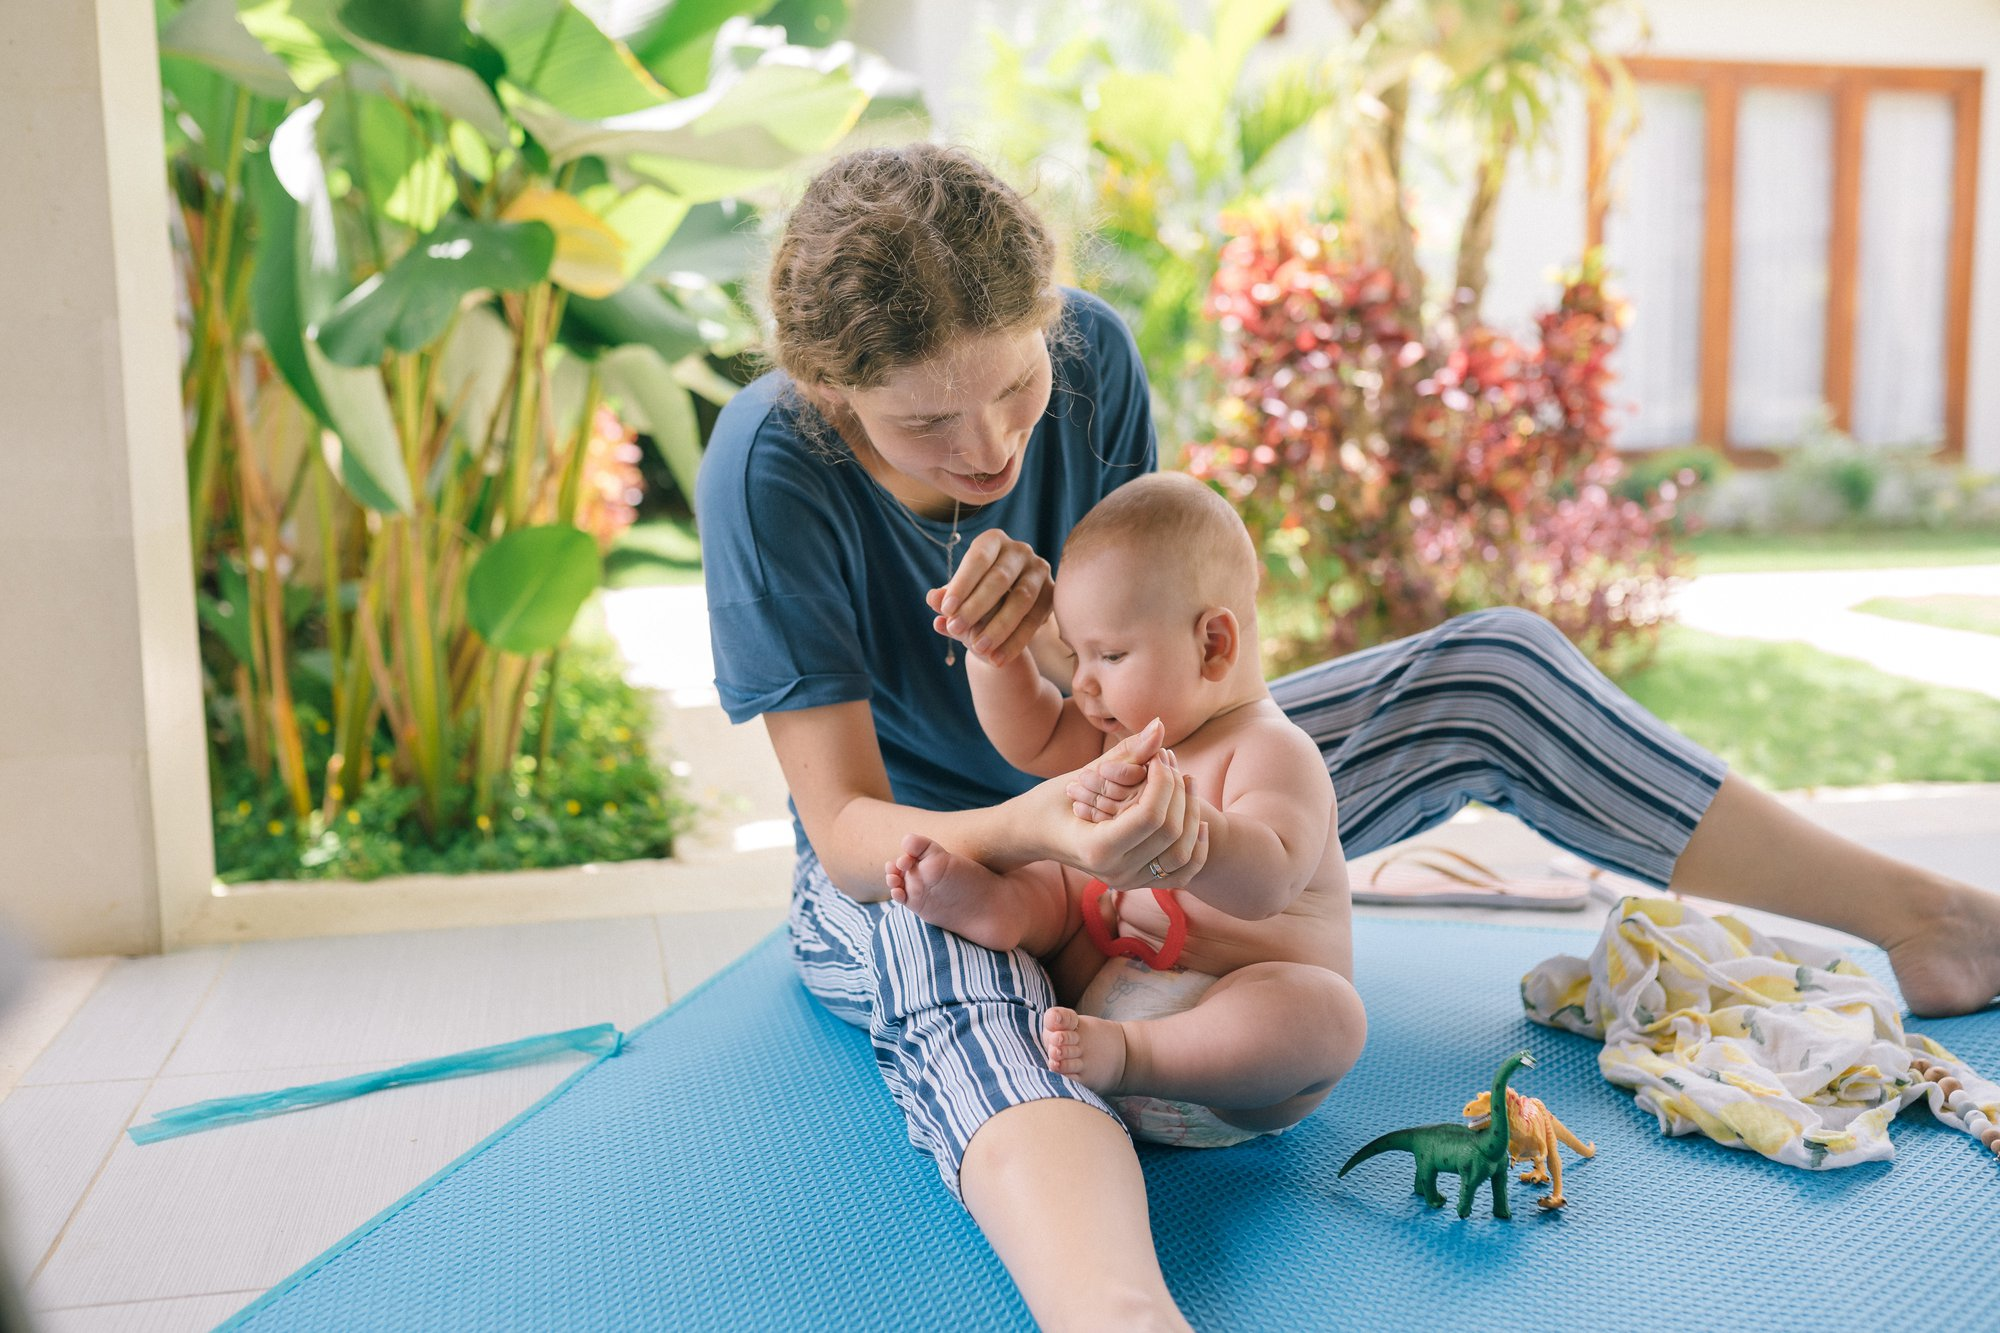 Top 7 Apps for Finding a Sitter